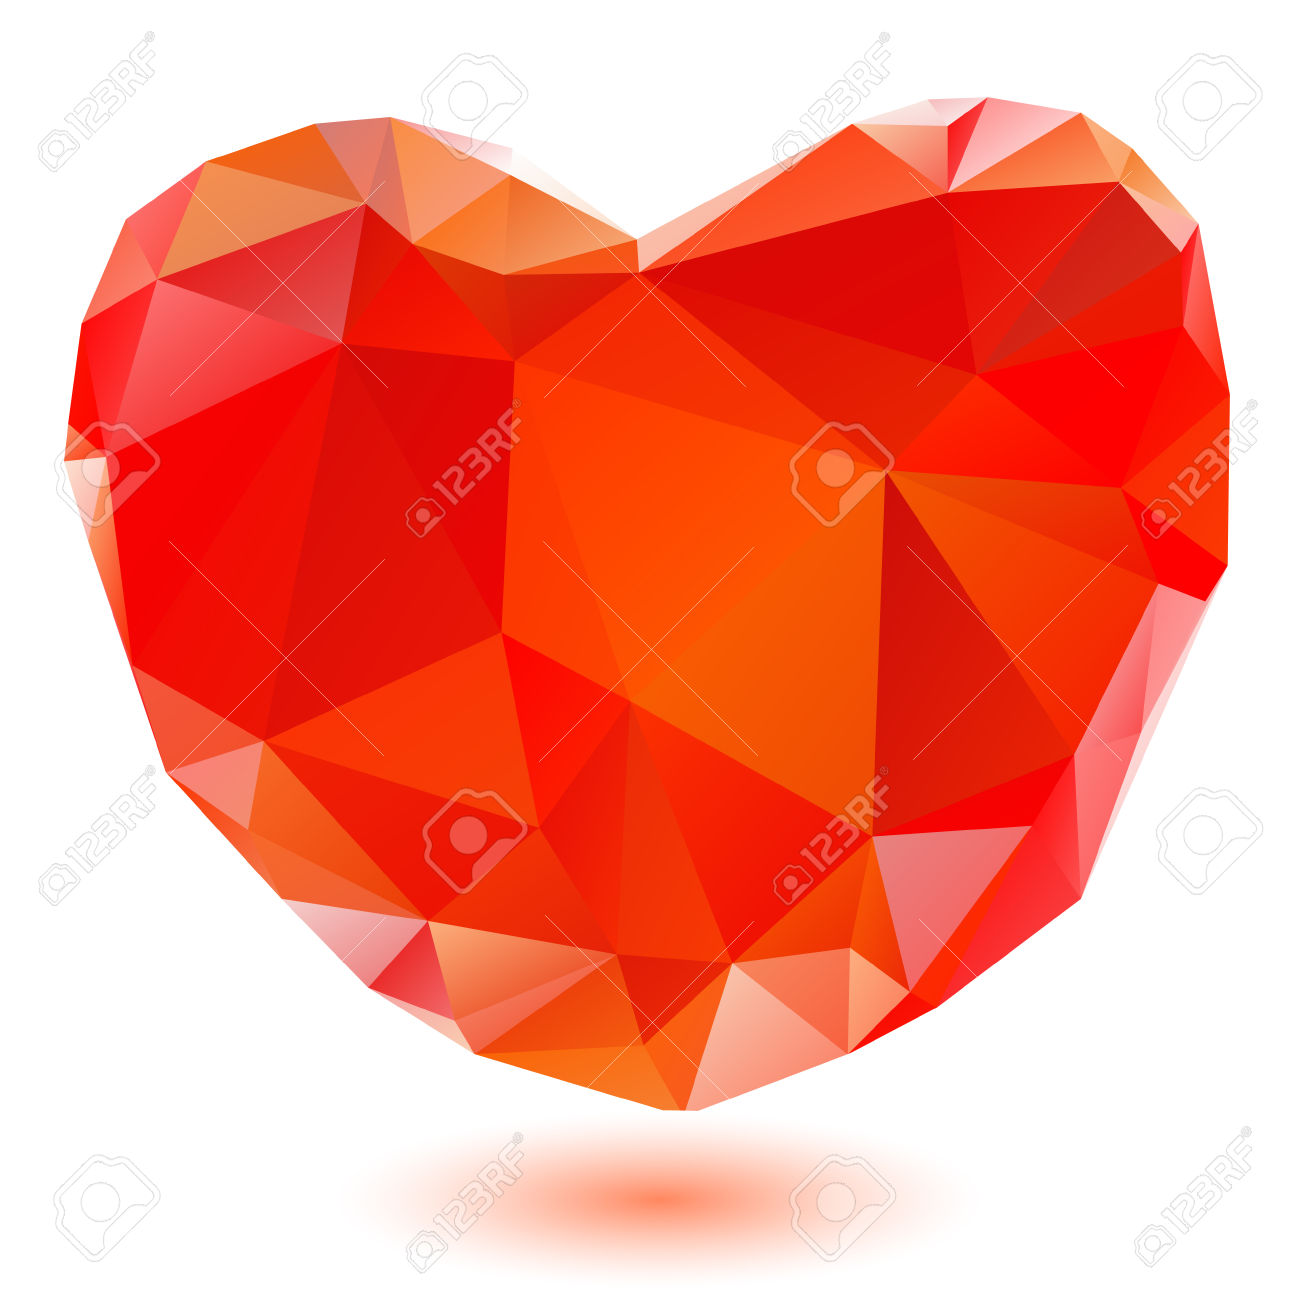 Hearts with shadow background clipart clipart transparent Red Crystal Heart With Shadow Isolated On A White Background ... clipart transparent